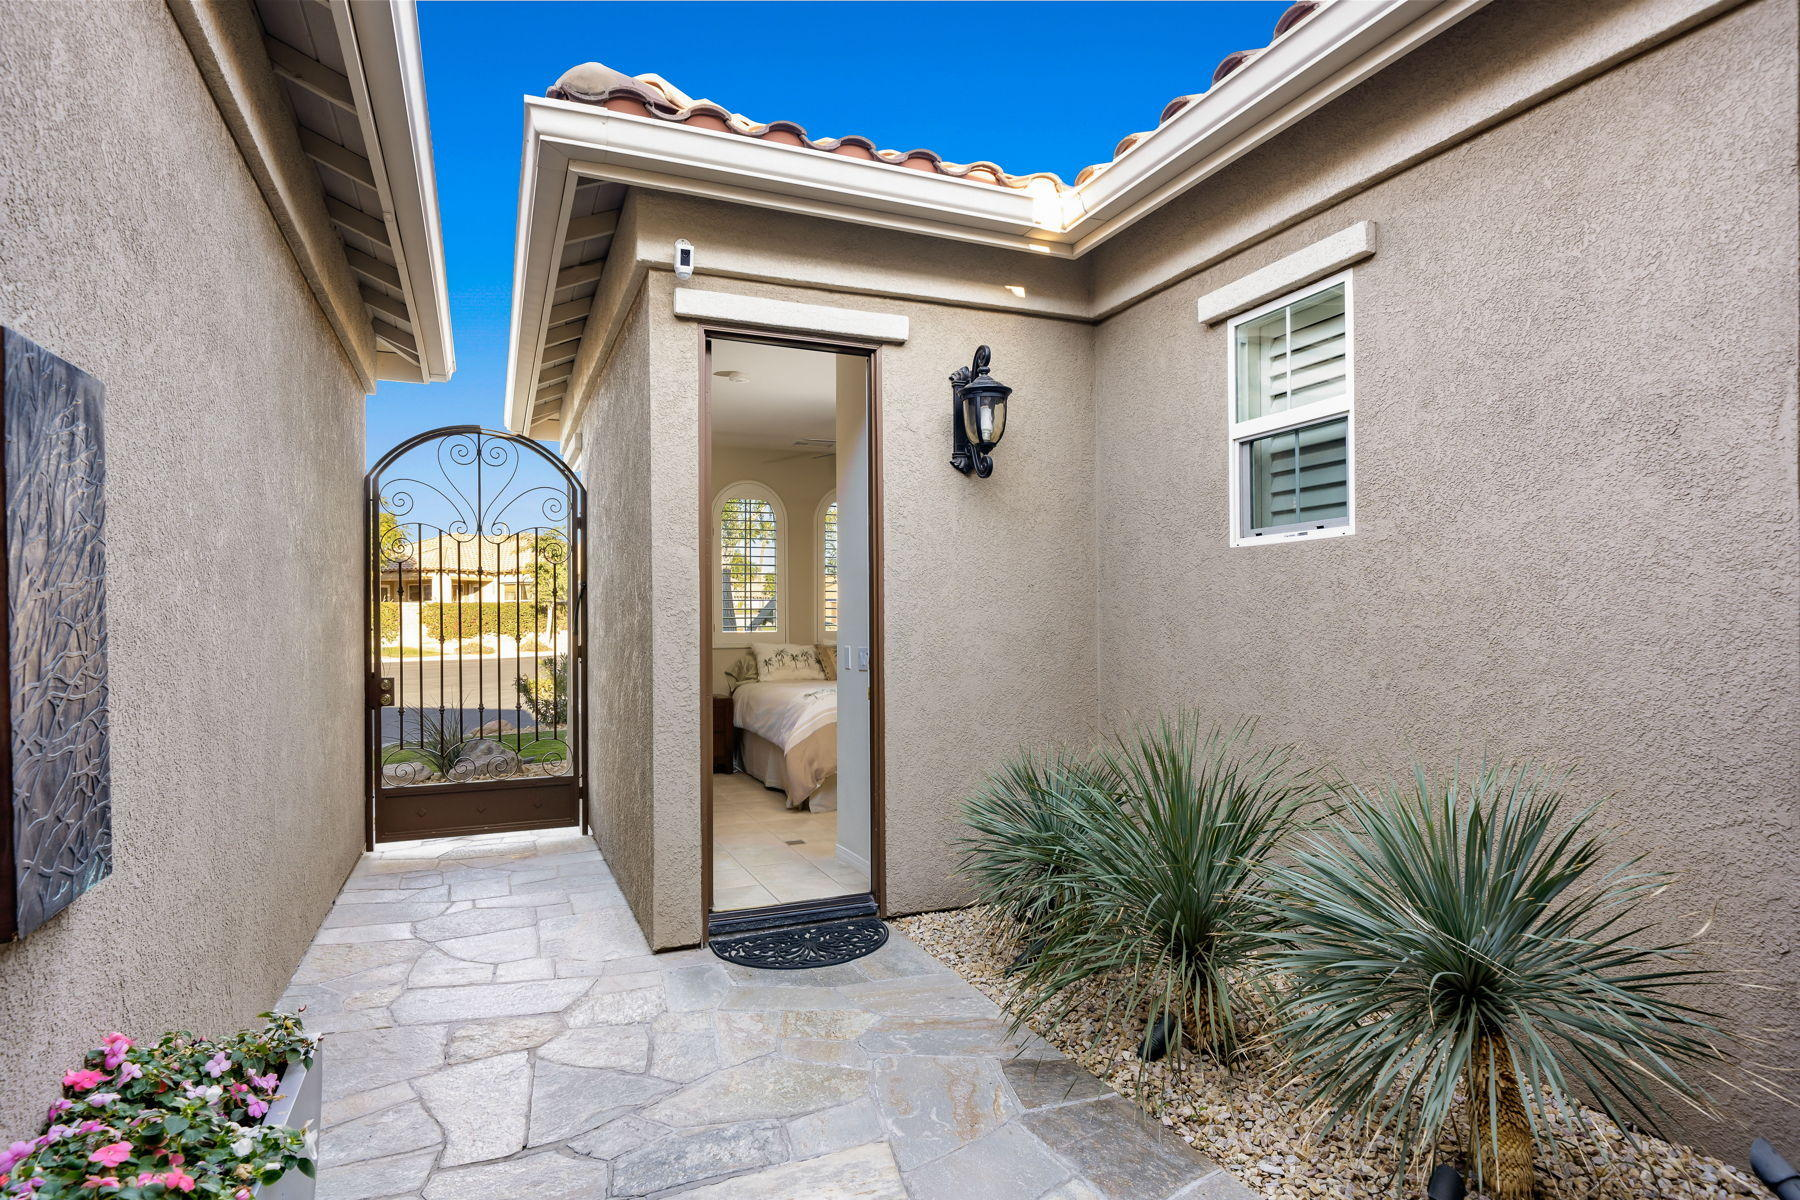 3 Pyramid Lake Court, Rancho Mirage, California 92270, 4 Bedrooms Bedrooms, ,4 BathroomsBathrooms,Residential,For Sale,3 Pyramid Lake Court,219036846